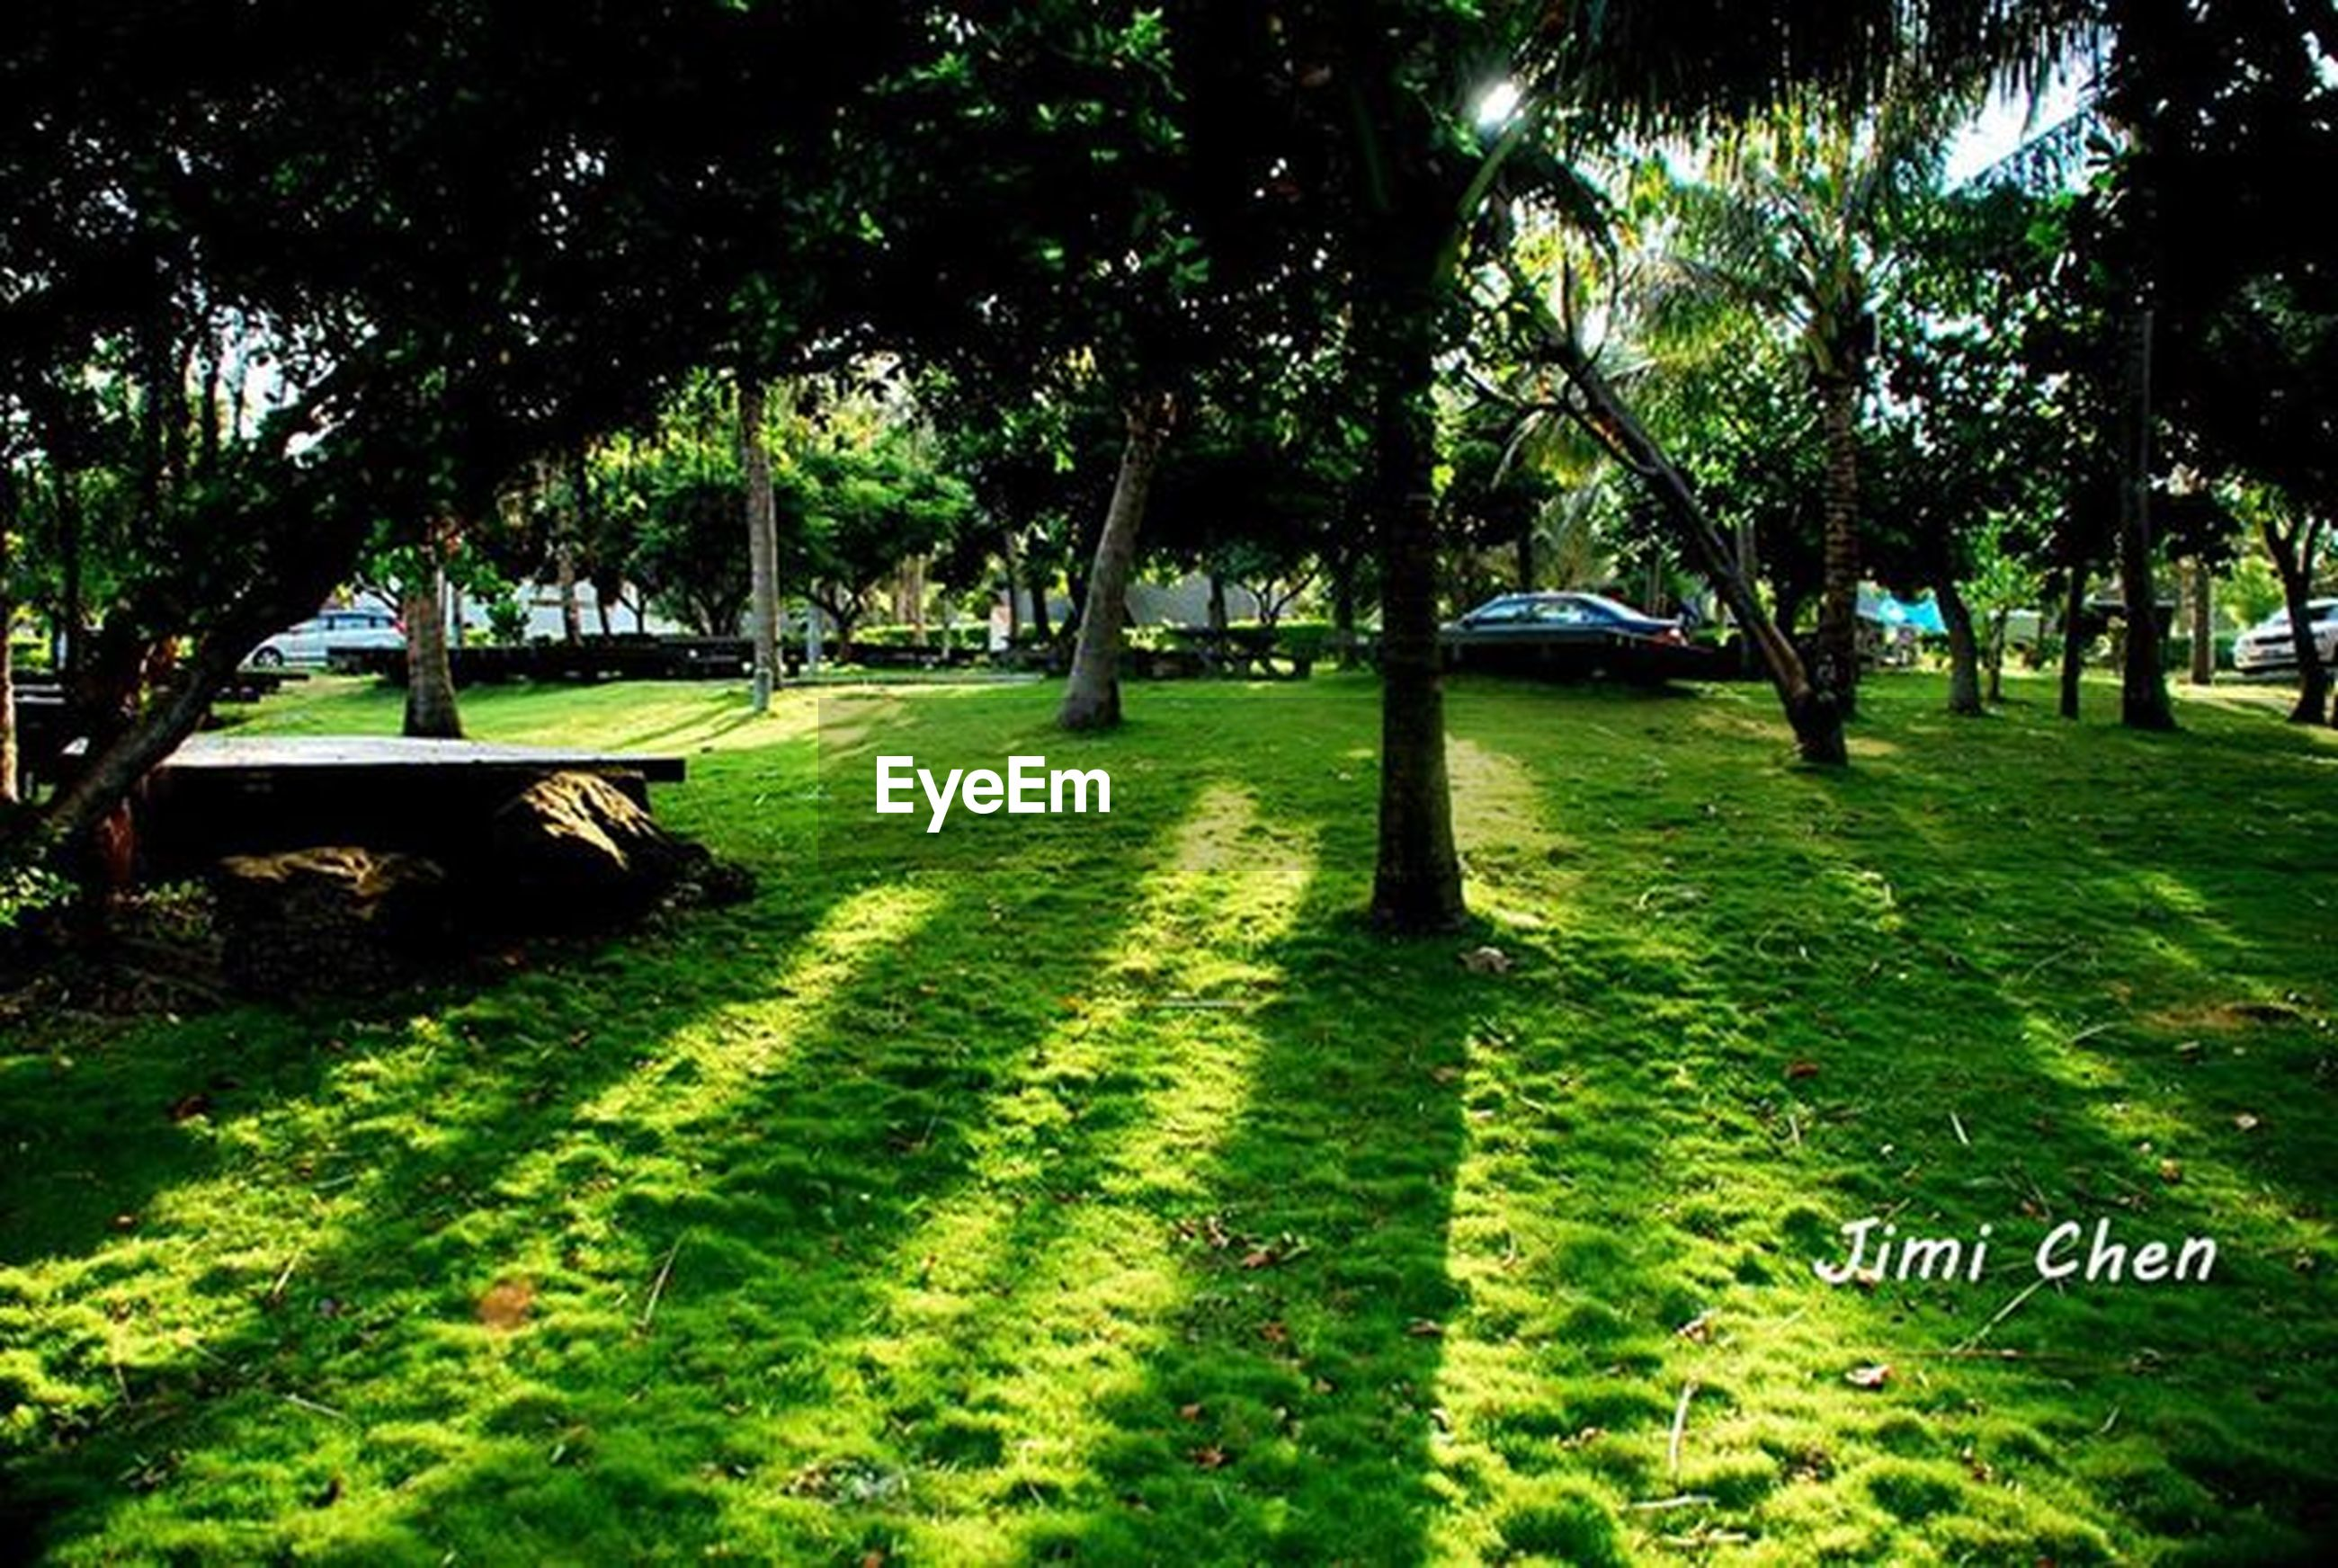 tree, grass, green color, park - man made space, growth, park, text, incidental people, nature, tree trunk, sunlight, branch, communication, western script, day, tranquility, transportation, outdoors, lawn, field